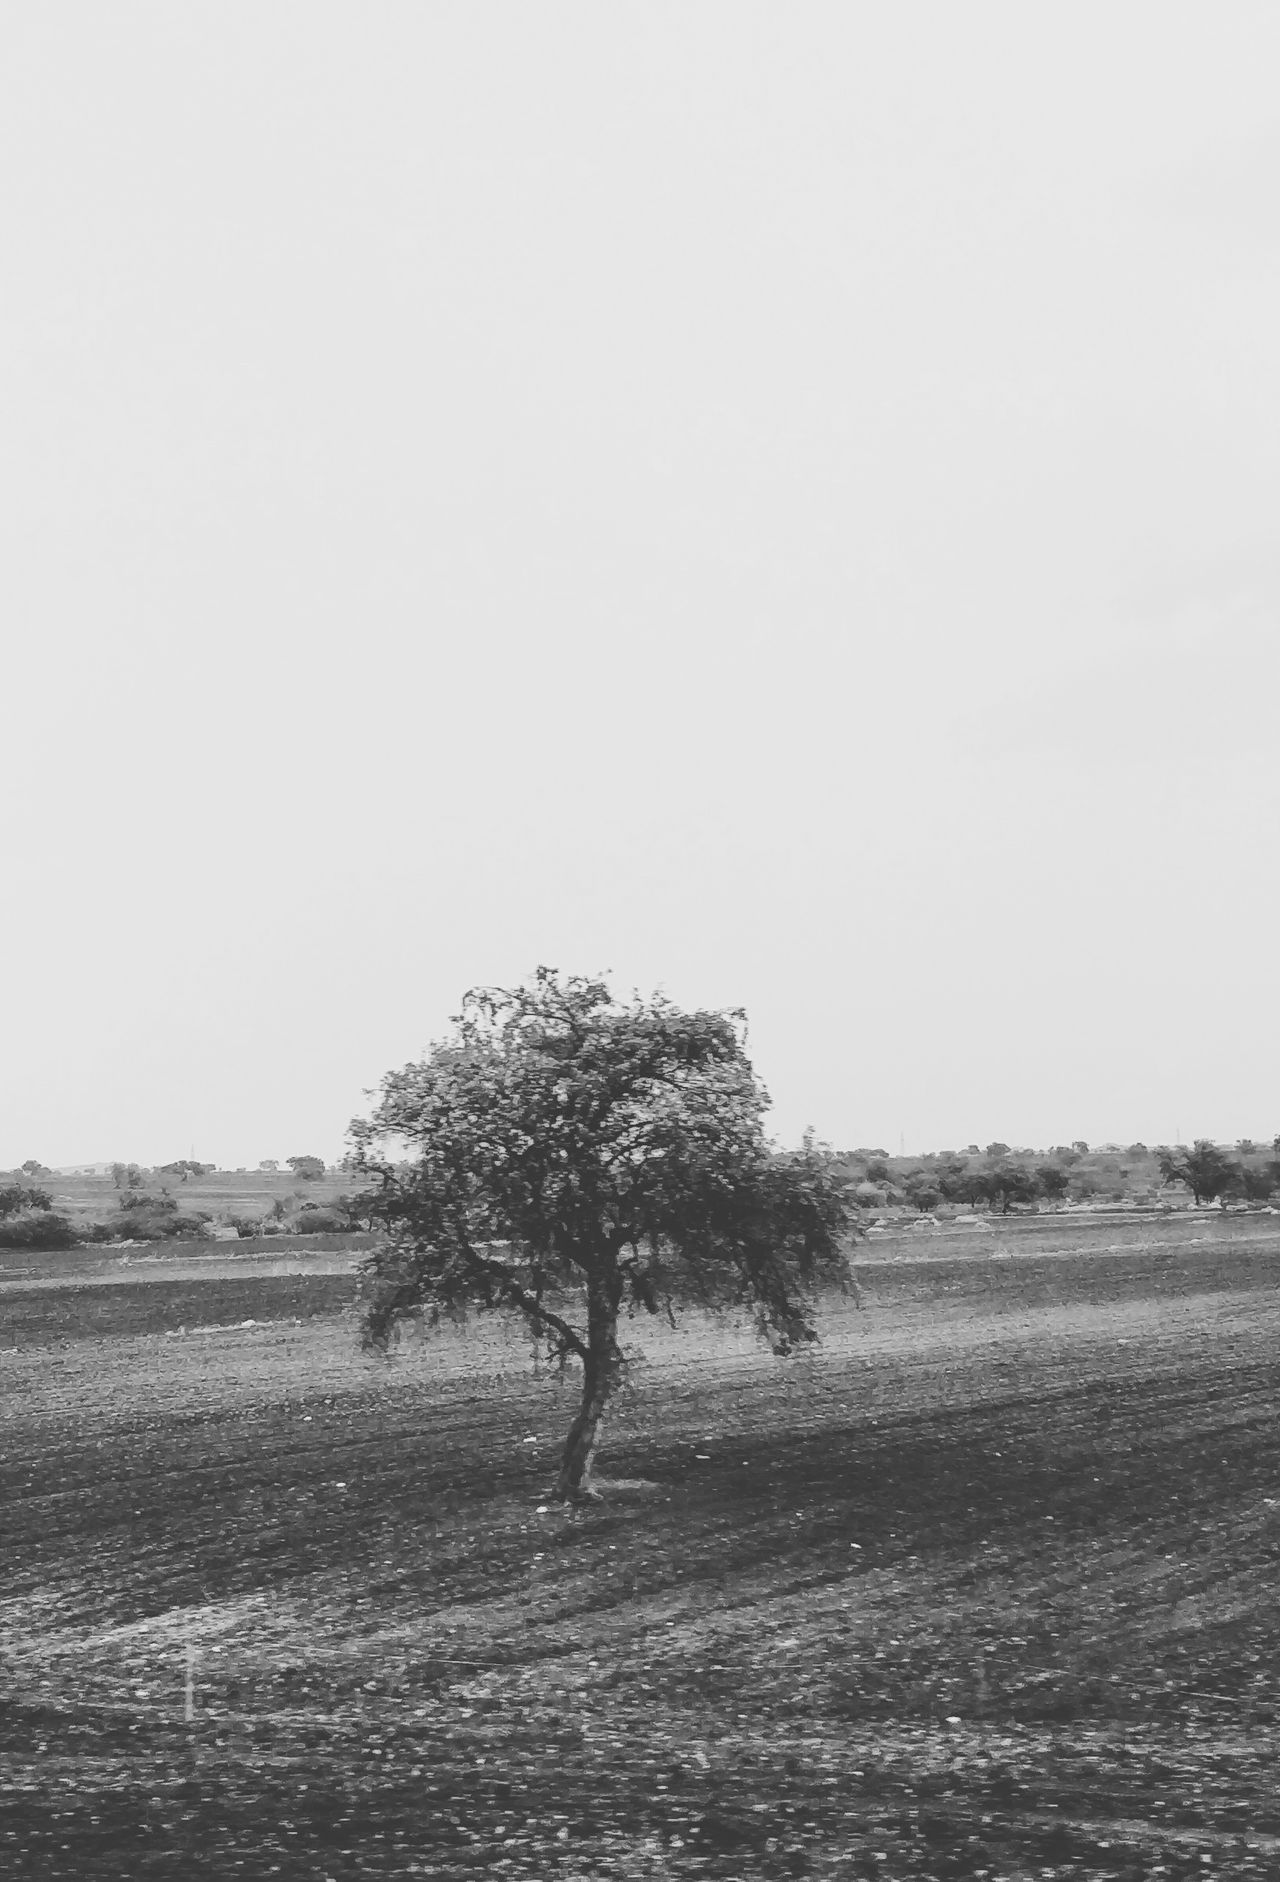 Tree Nature Field Beauty In Nature Outdoors Agriculture Landscape No People Day Sky Blackandwhite Bnw India Monochrome TheWeek On EyEem Landscape_Collection Clearsky Karnataka